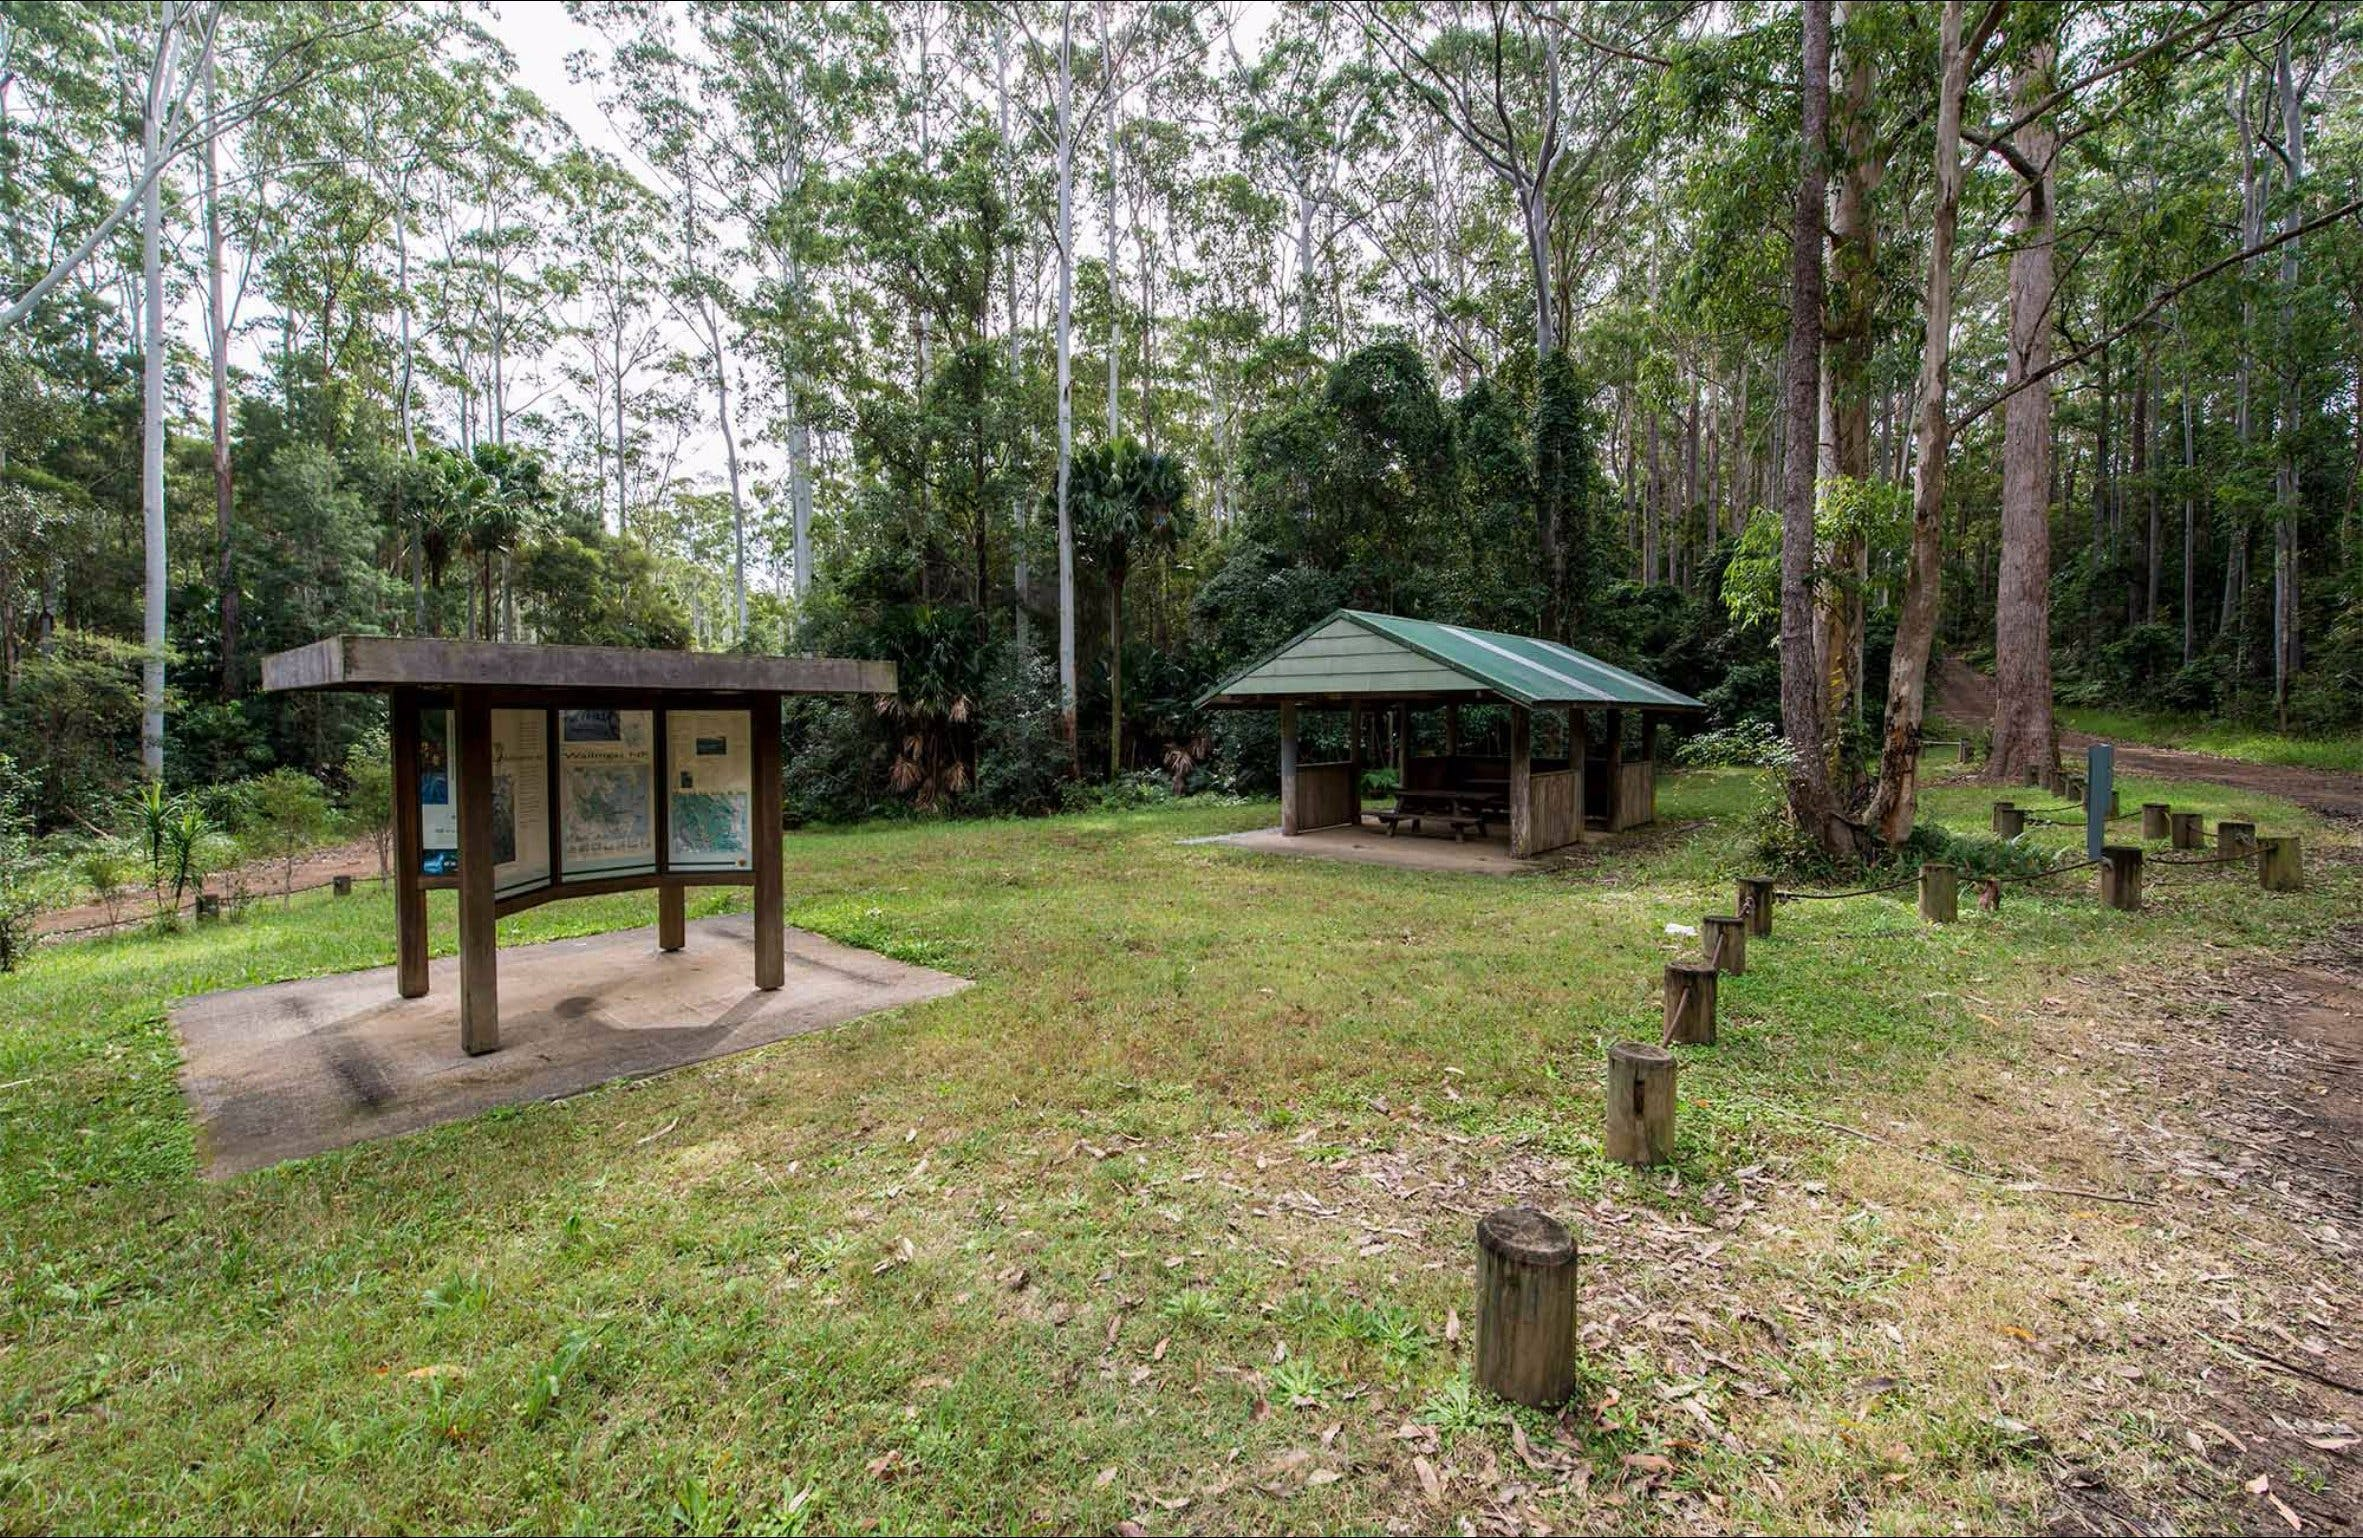 Gur-um-bee picnic area - Tourism Brisbane